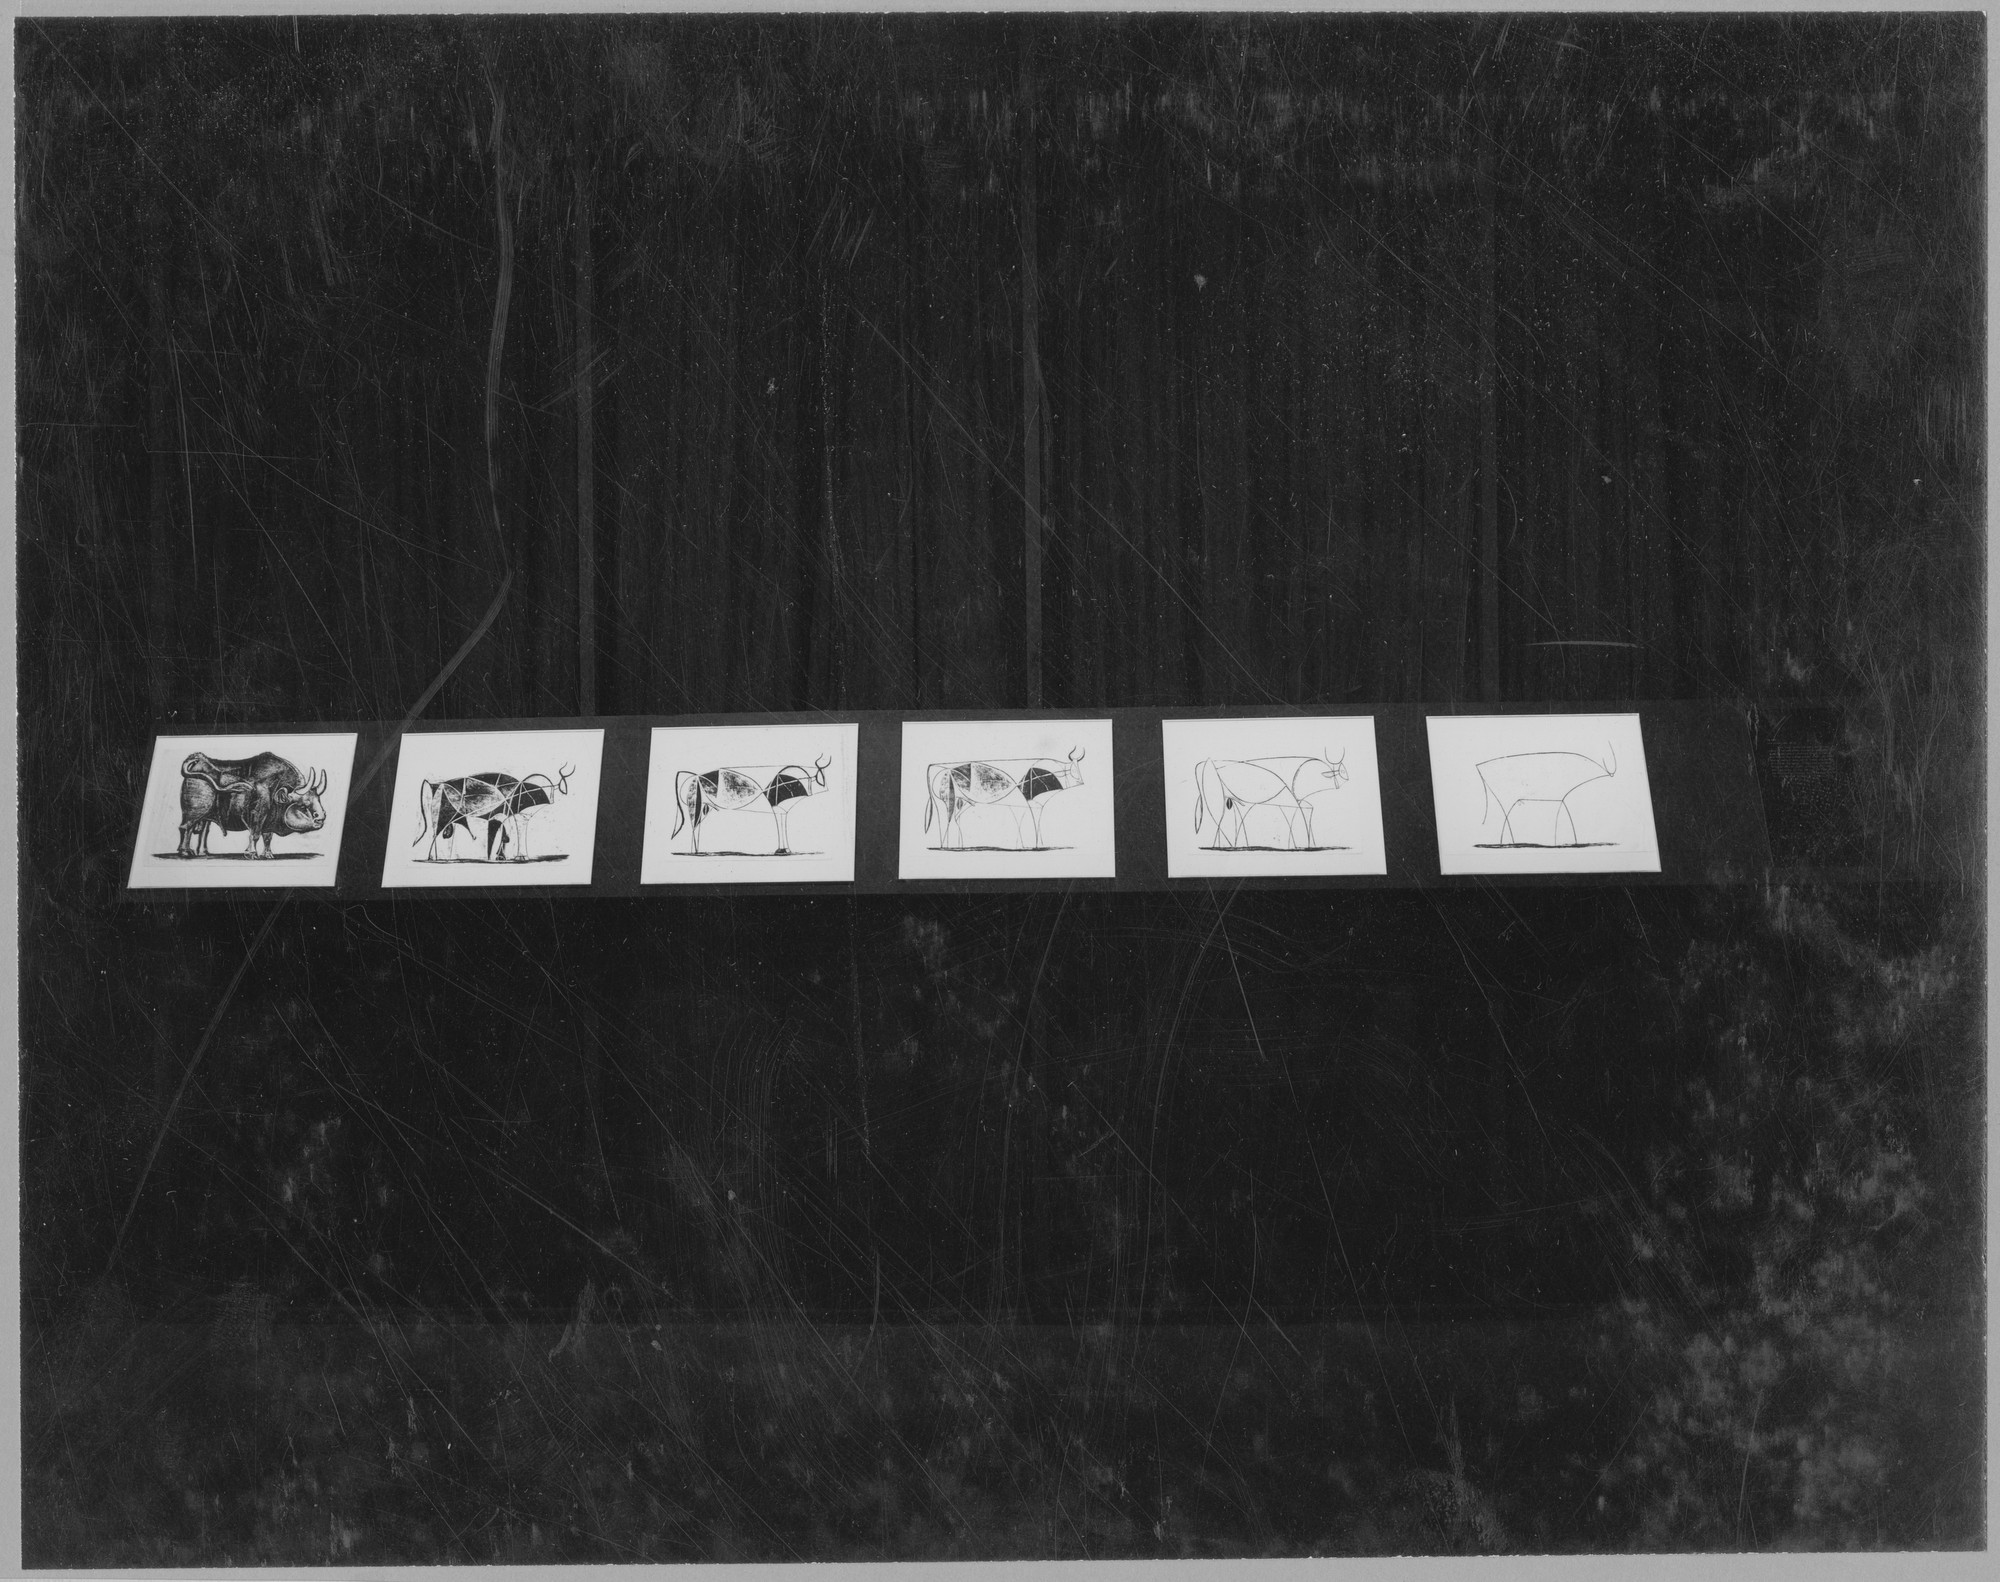 "Installation view of the exhibition,""46 Recent Lithographs by Picasso."" January 28, 1947–April 6, 1947. Photographic Archive. The Museum of Modern Art Archives, New York. IN342.1. Photograph by Soichi Sunami."